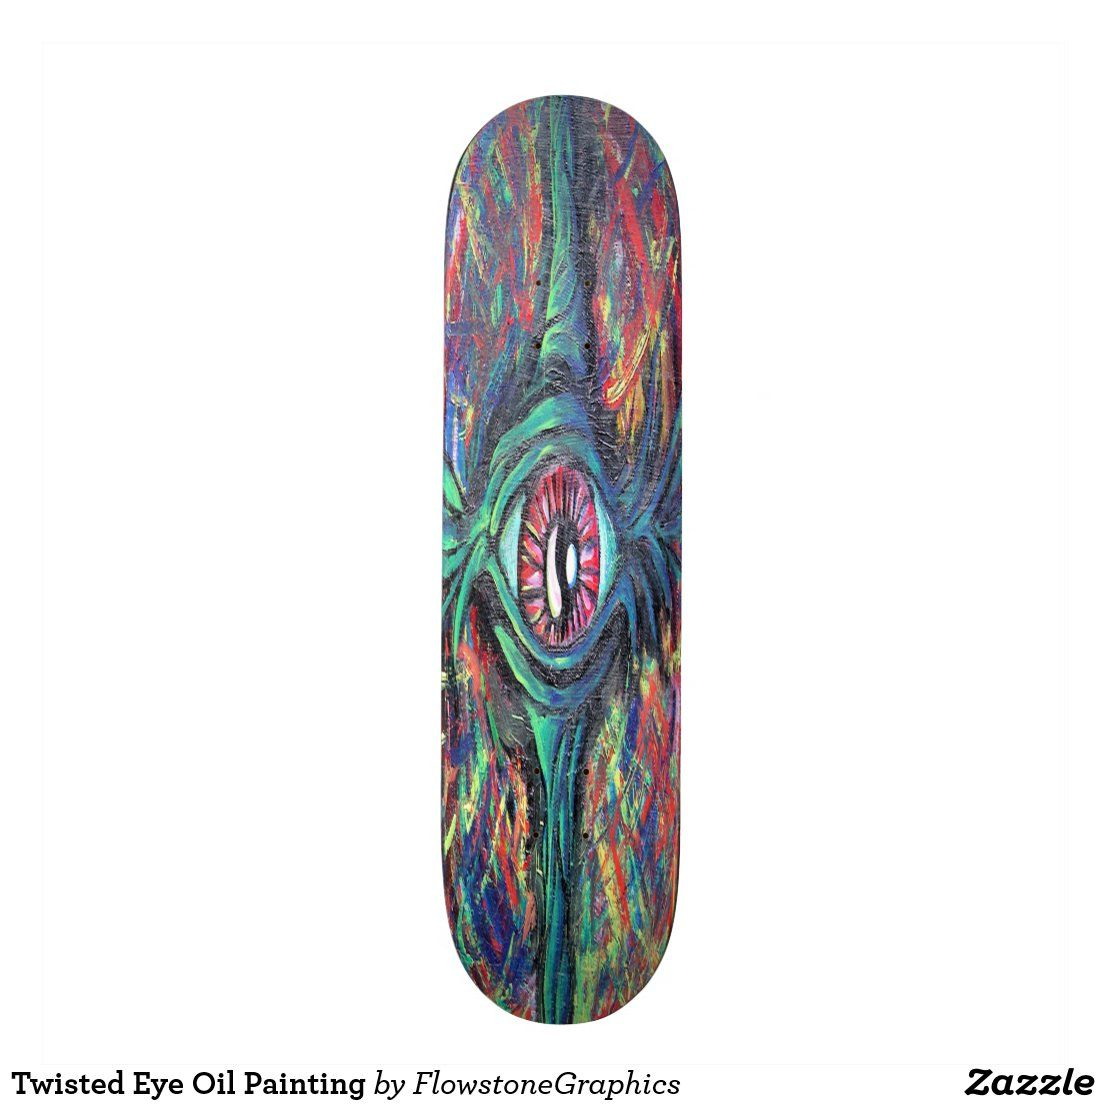 Twisted Eye Oil Painting Skateboard Deck Zazzle Com With Images Oil Painting Skateboard Decks Skateboard